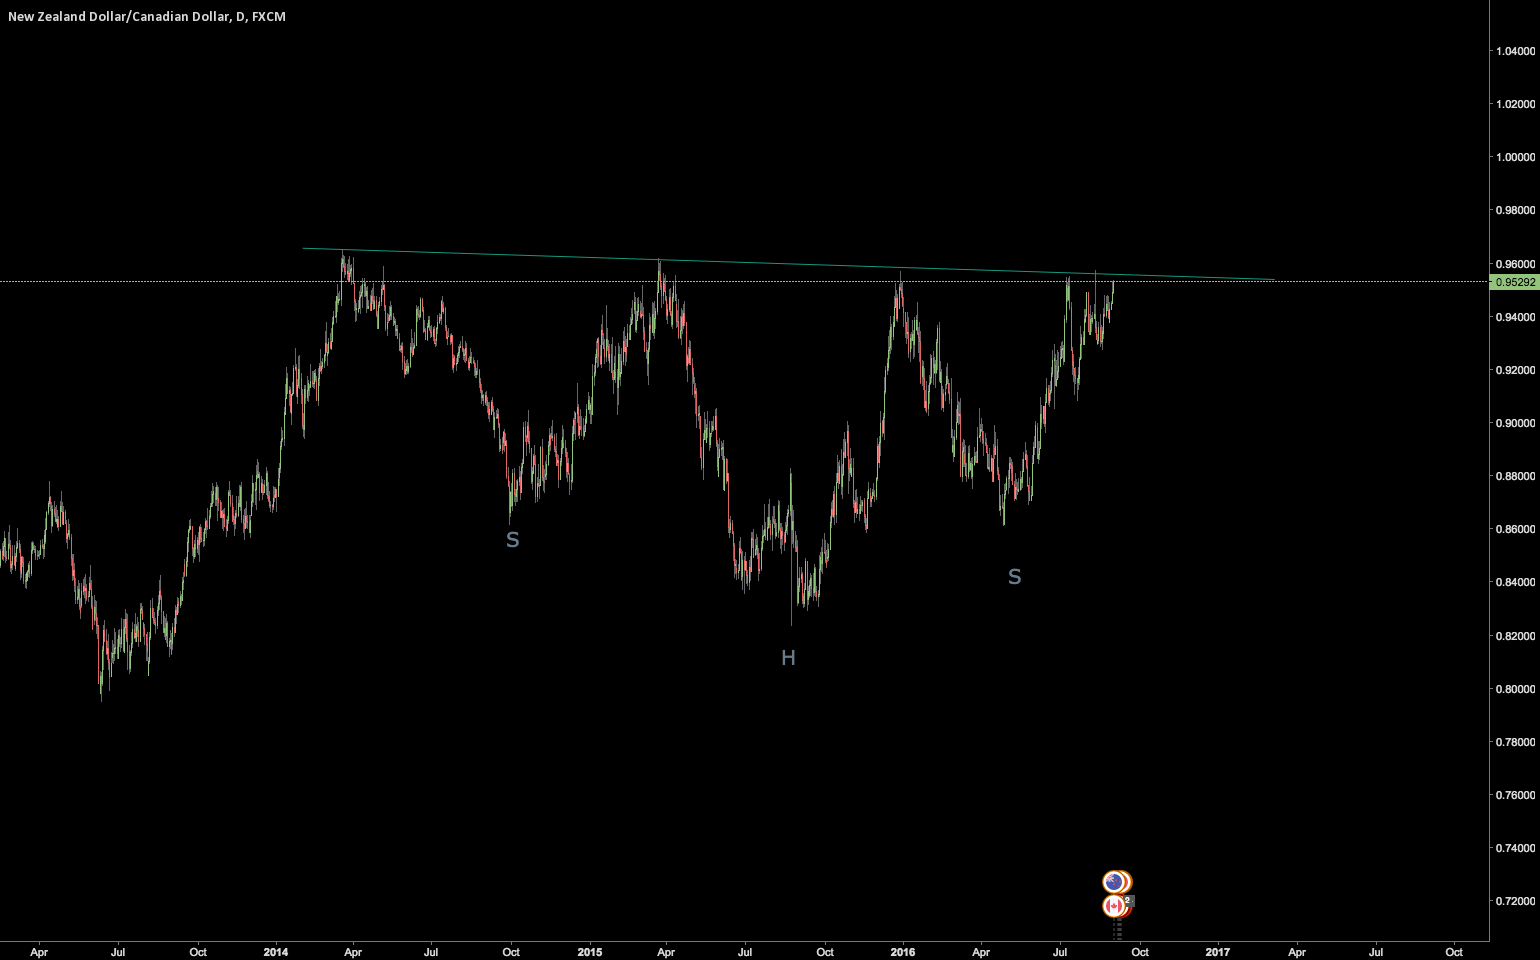 NZDCAD  27 month Head and shoulders